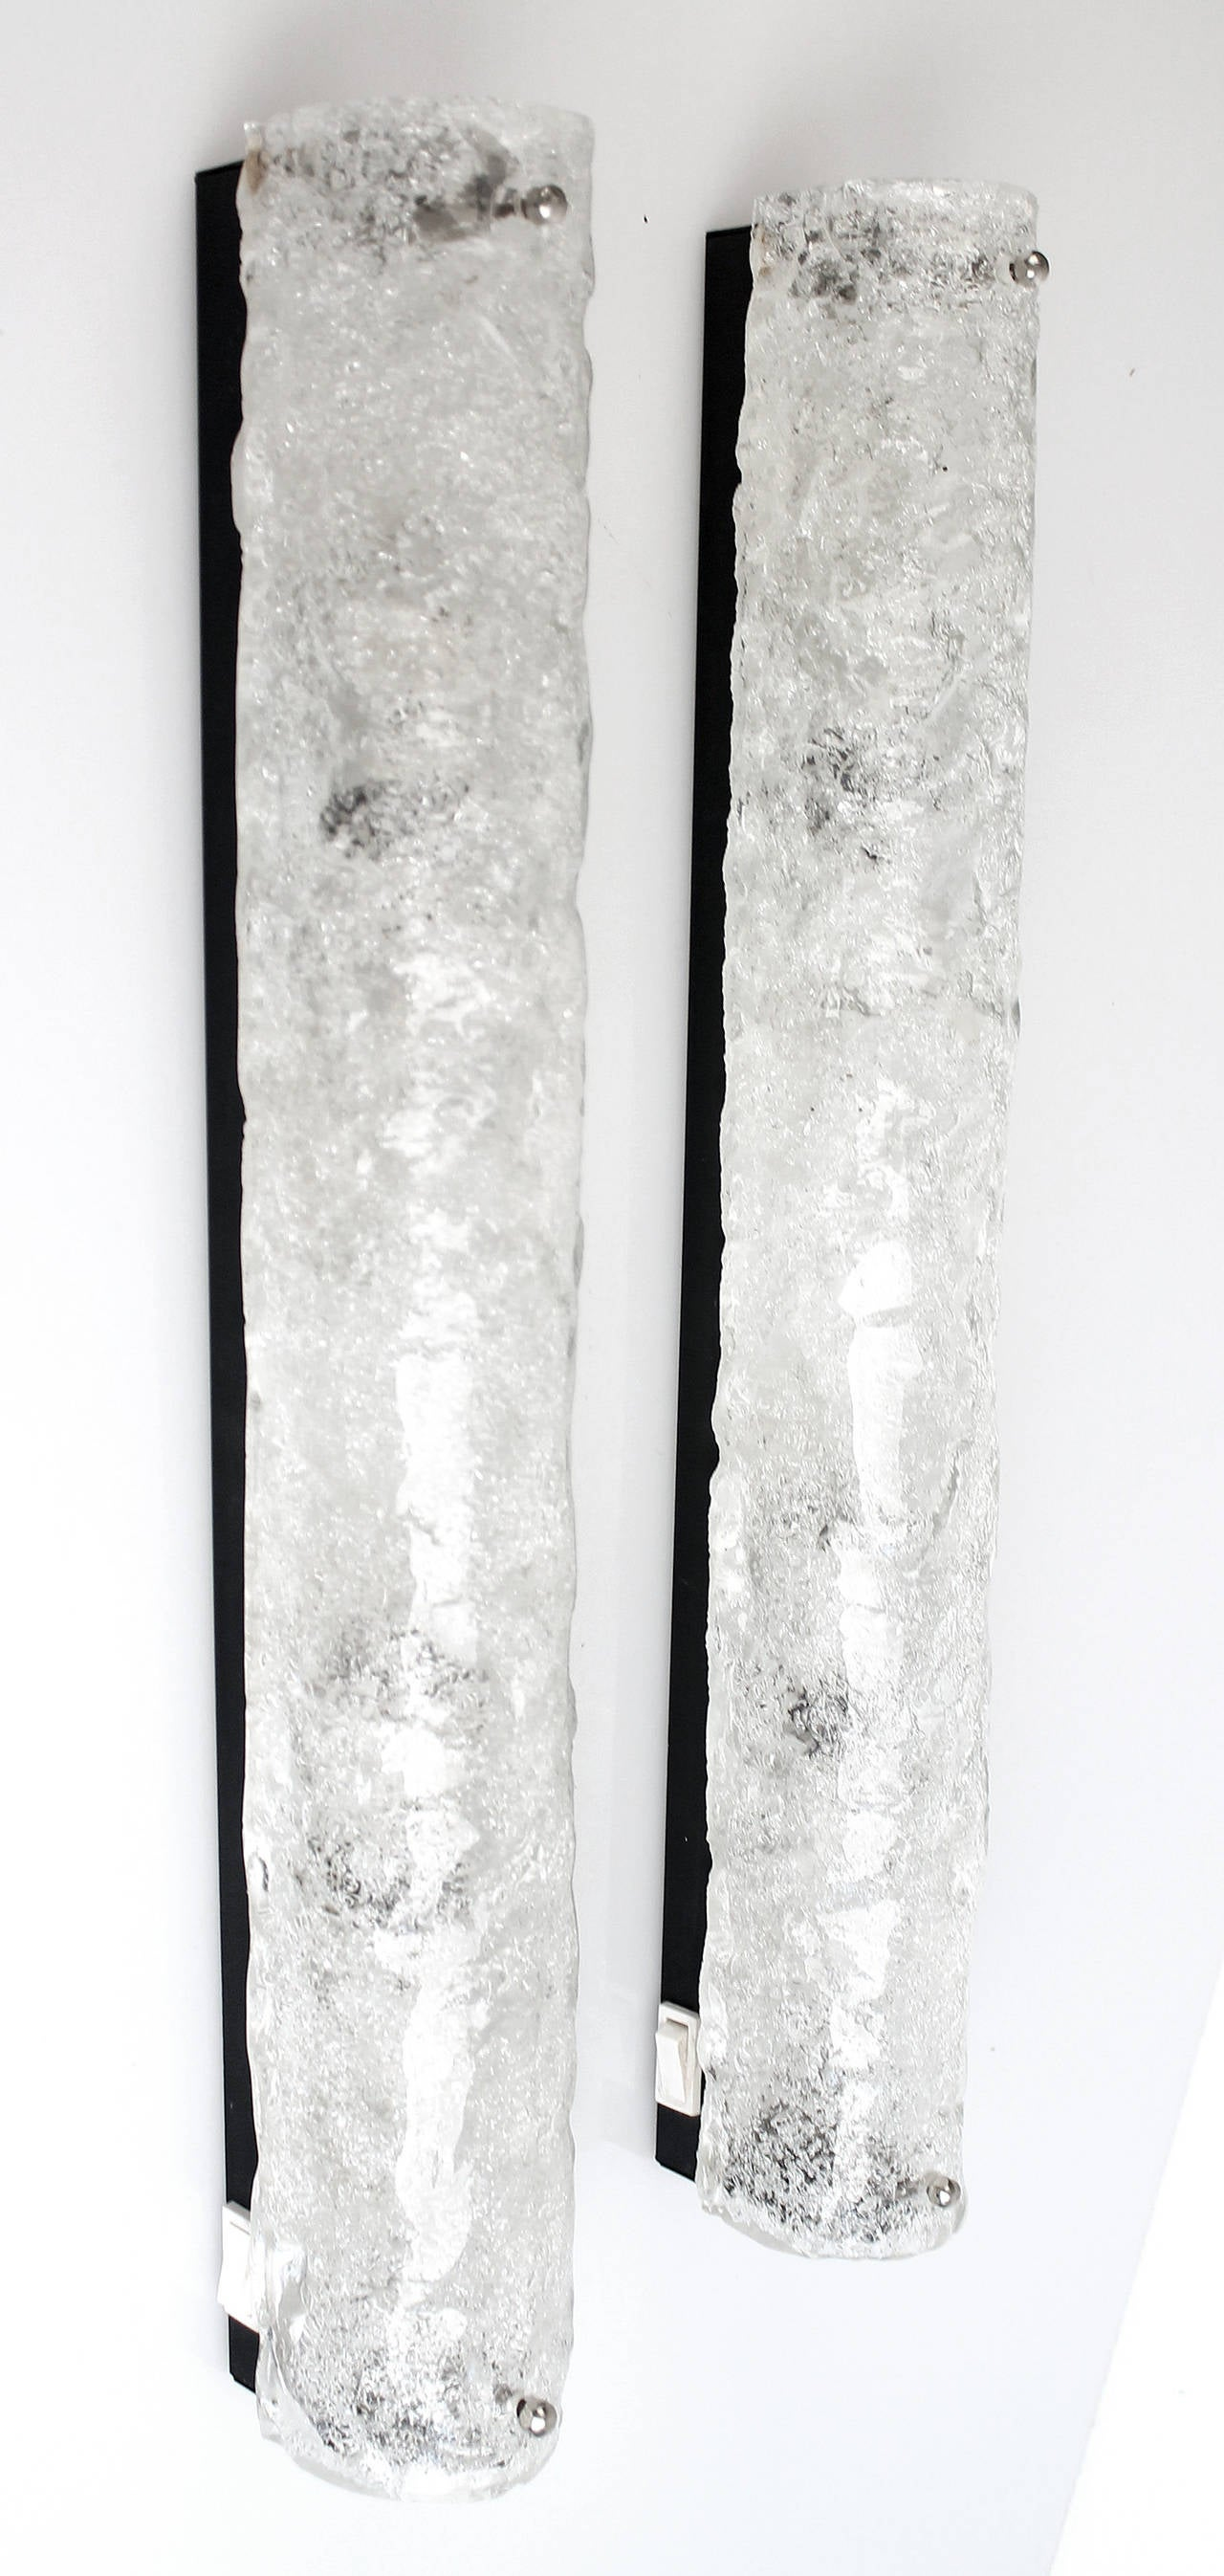 Pair of very large murano glass sconce wall light at 1stdibs for Large glass wall